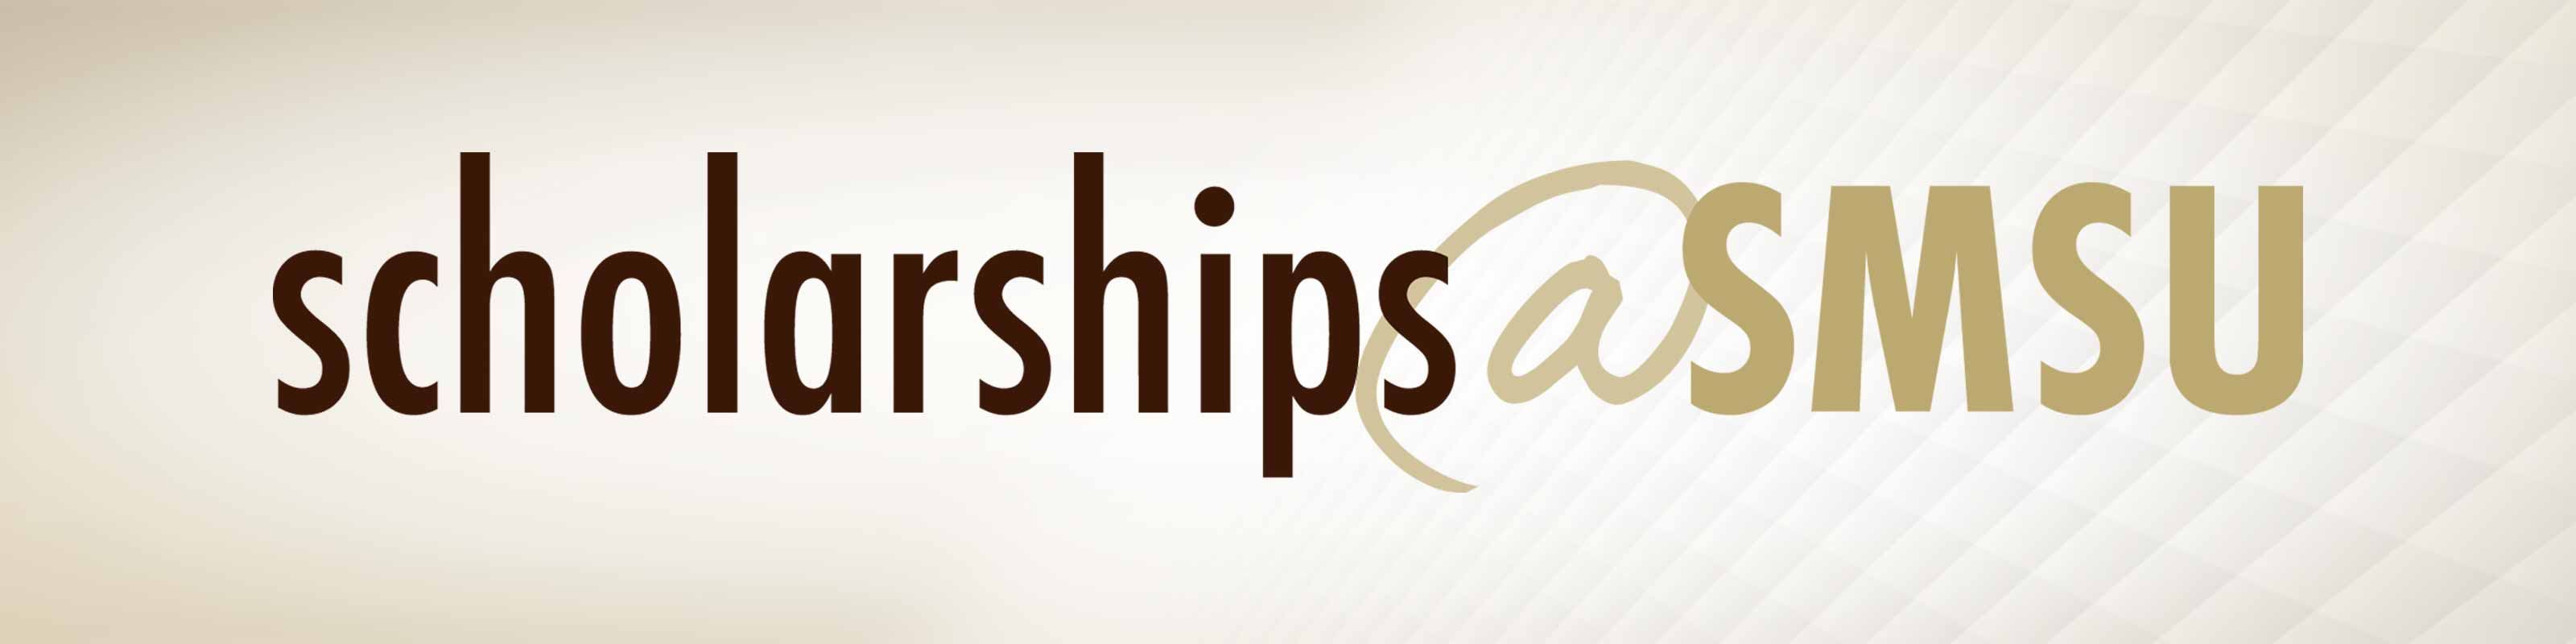 Scholarships At SMSU